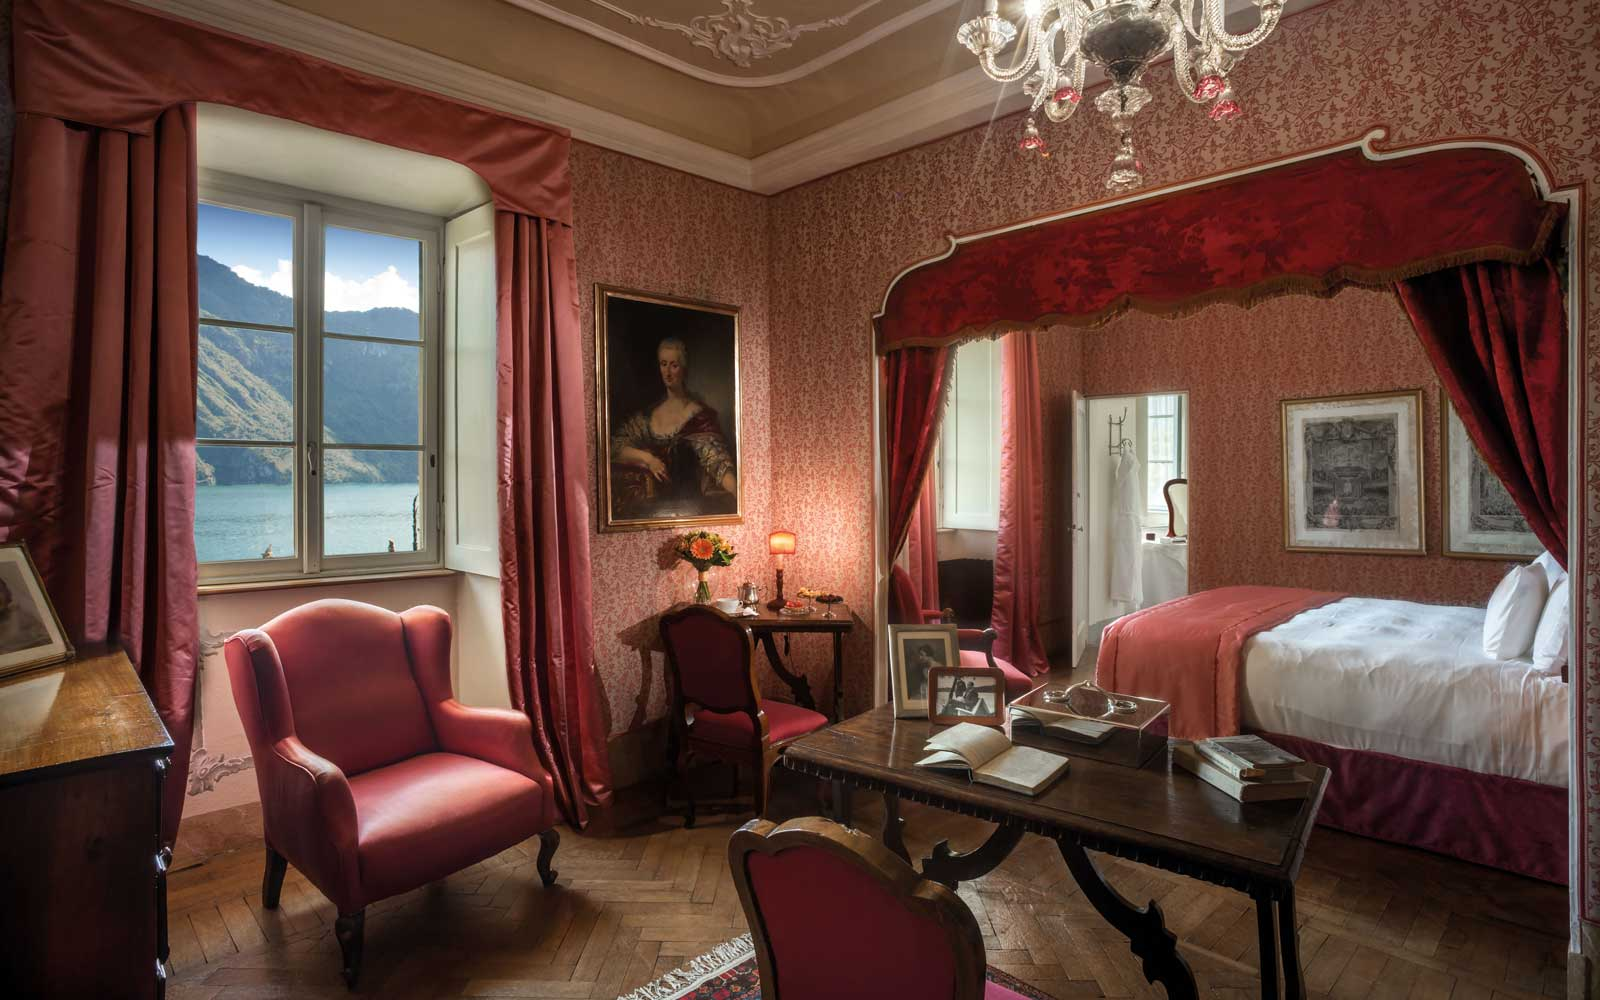 Nora Suite at the Villa Sola Cabiati, Lake Como, Italy